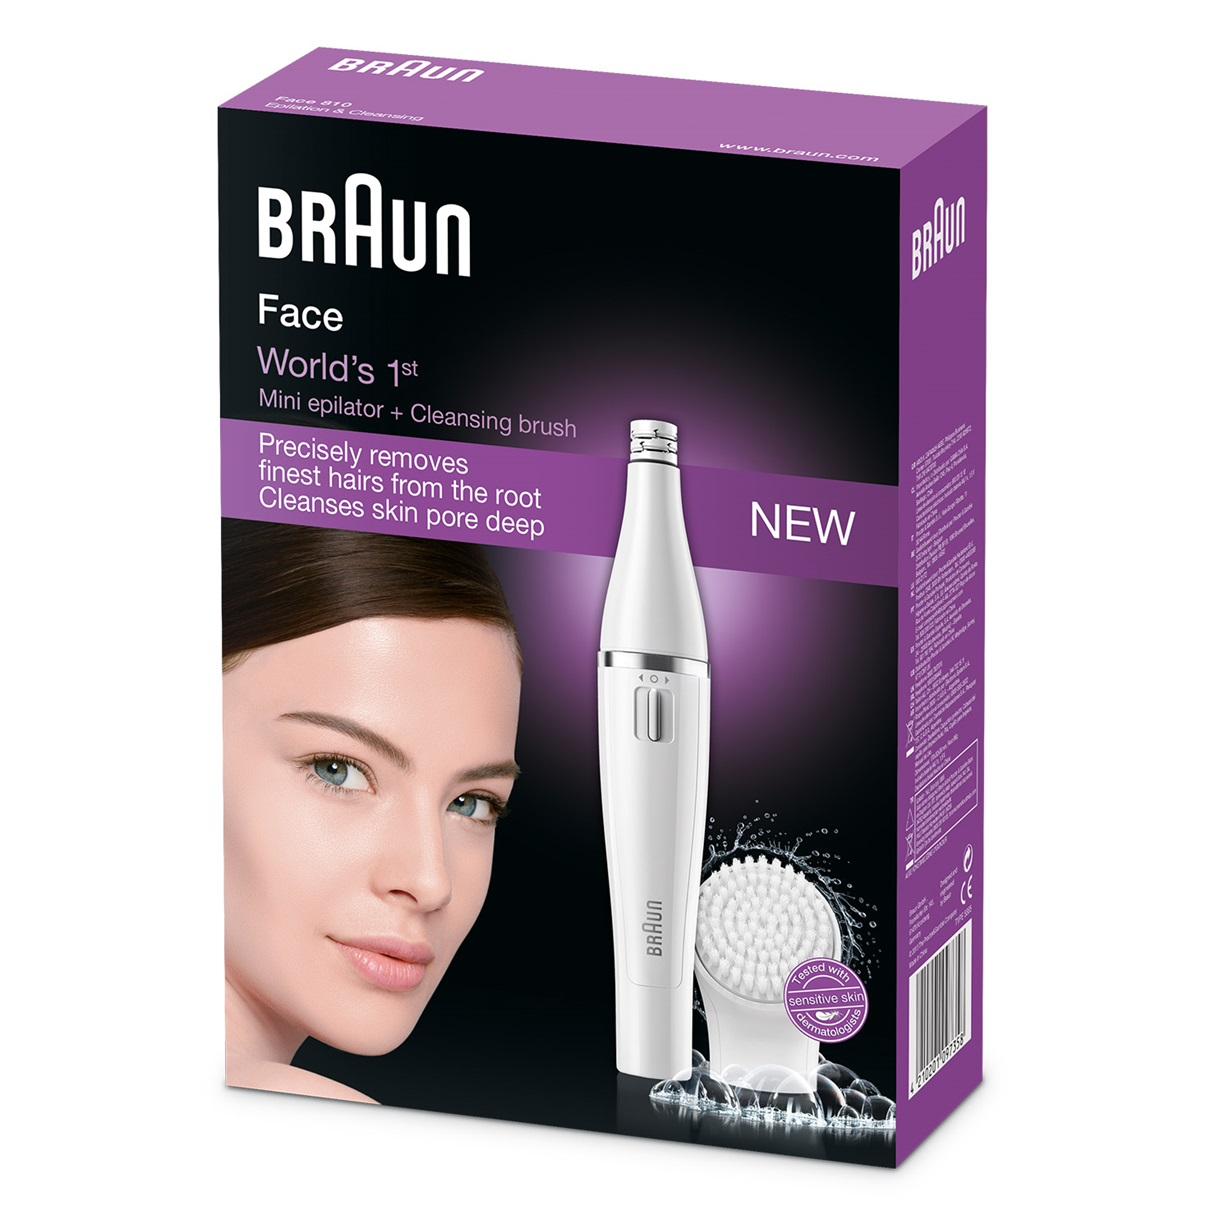 Braun Face 820 - facial epilator & facial cleansing brush with micro-oscillations - packaging